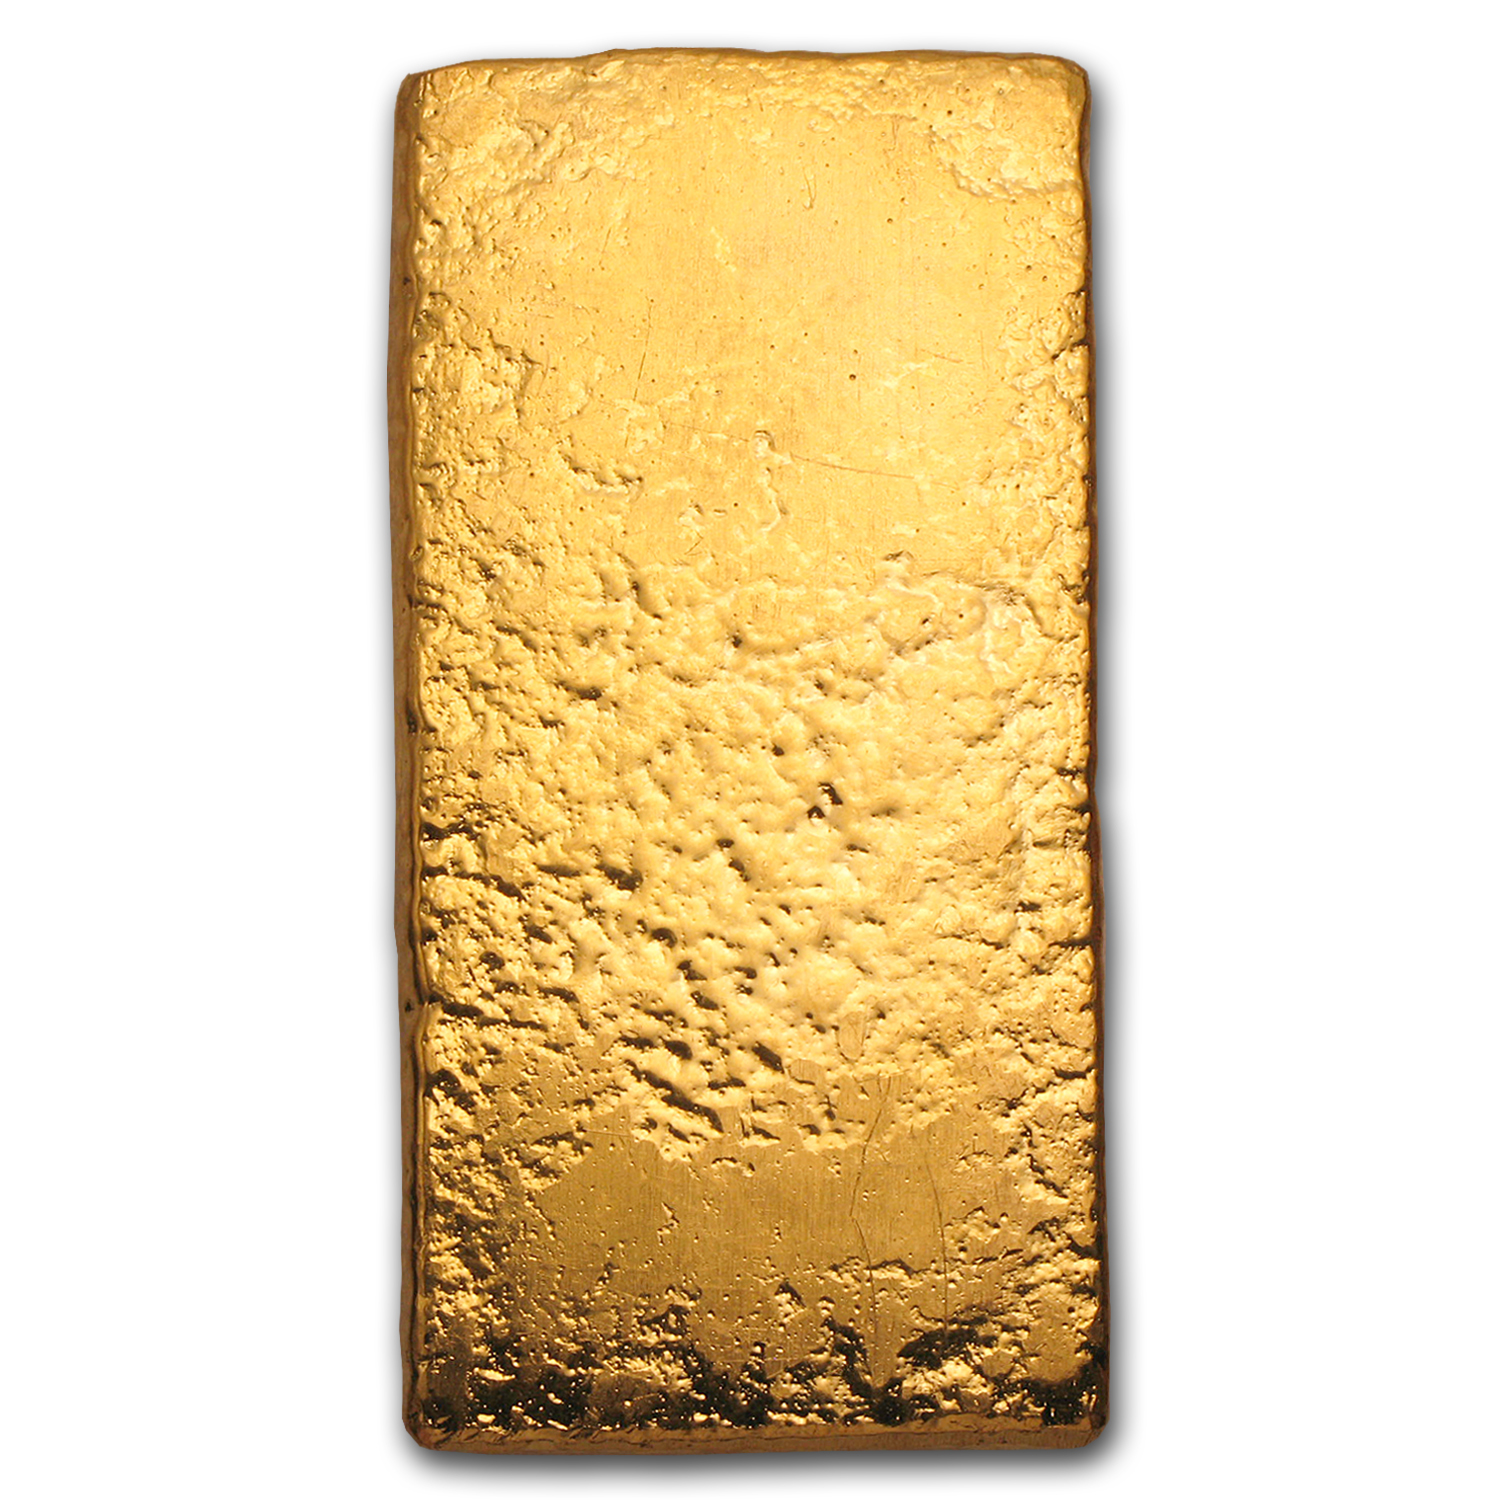 10 oz Gold Bars - Johnson Matthey (New)